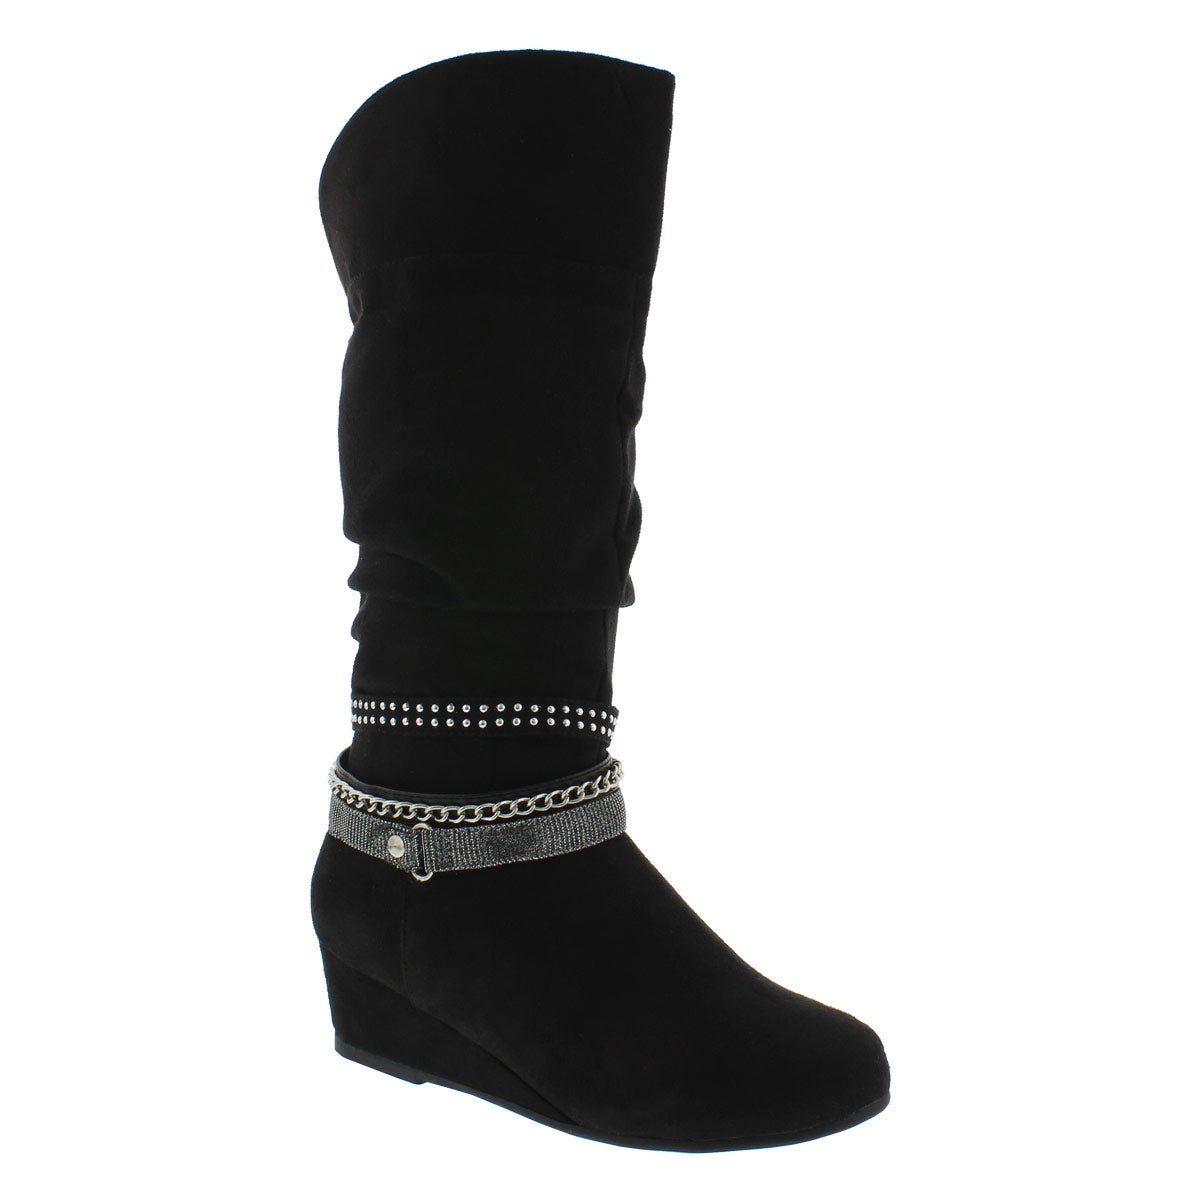 Grls Melanie blk tall casual boot